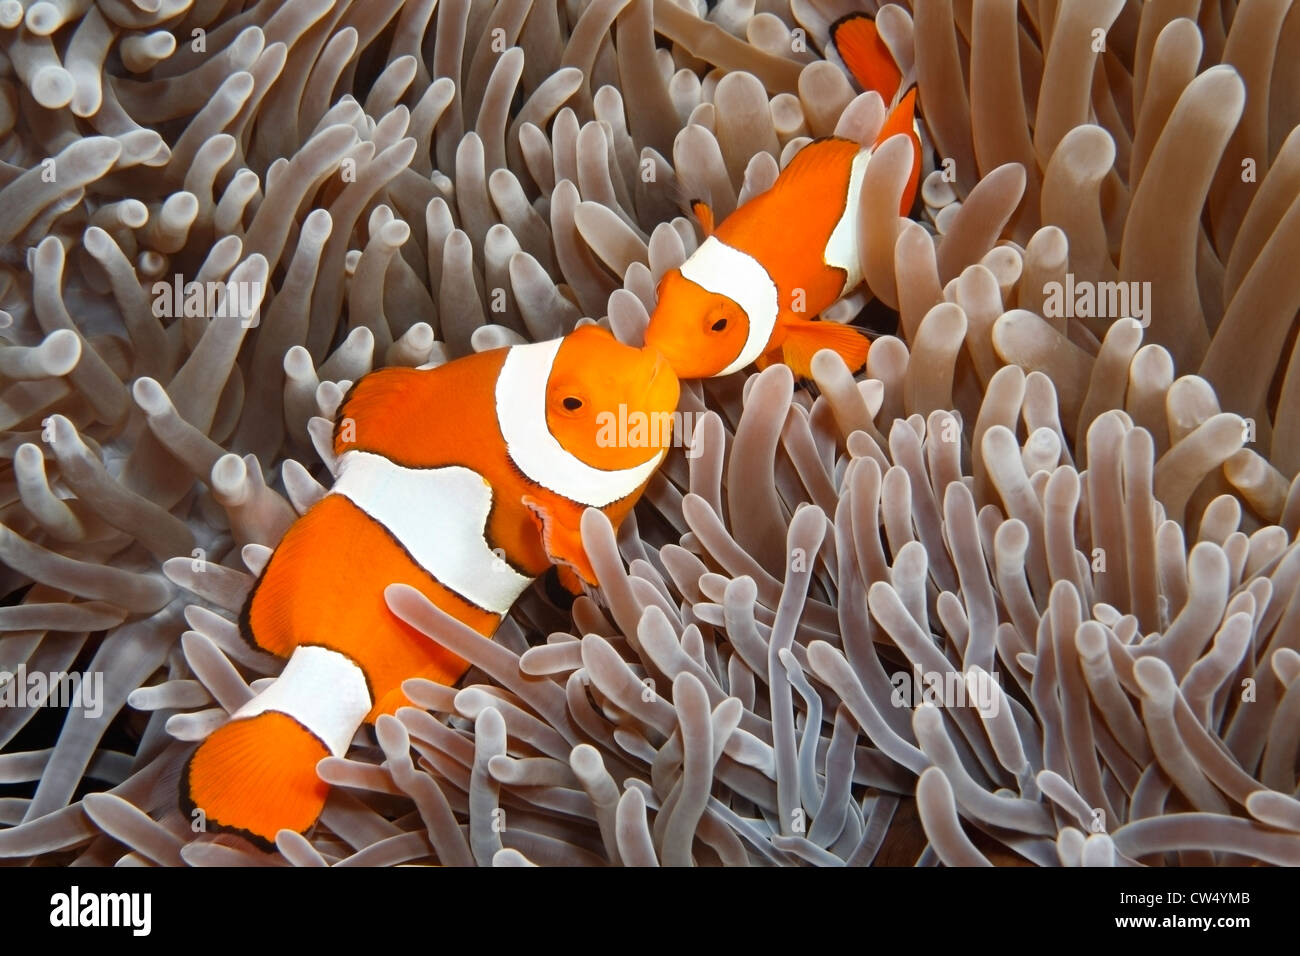 clown-anemonefish-amphiprion-percula-in-their-sea-anemone-CW4YMB.jpg